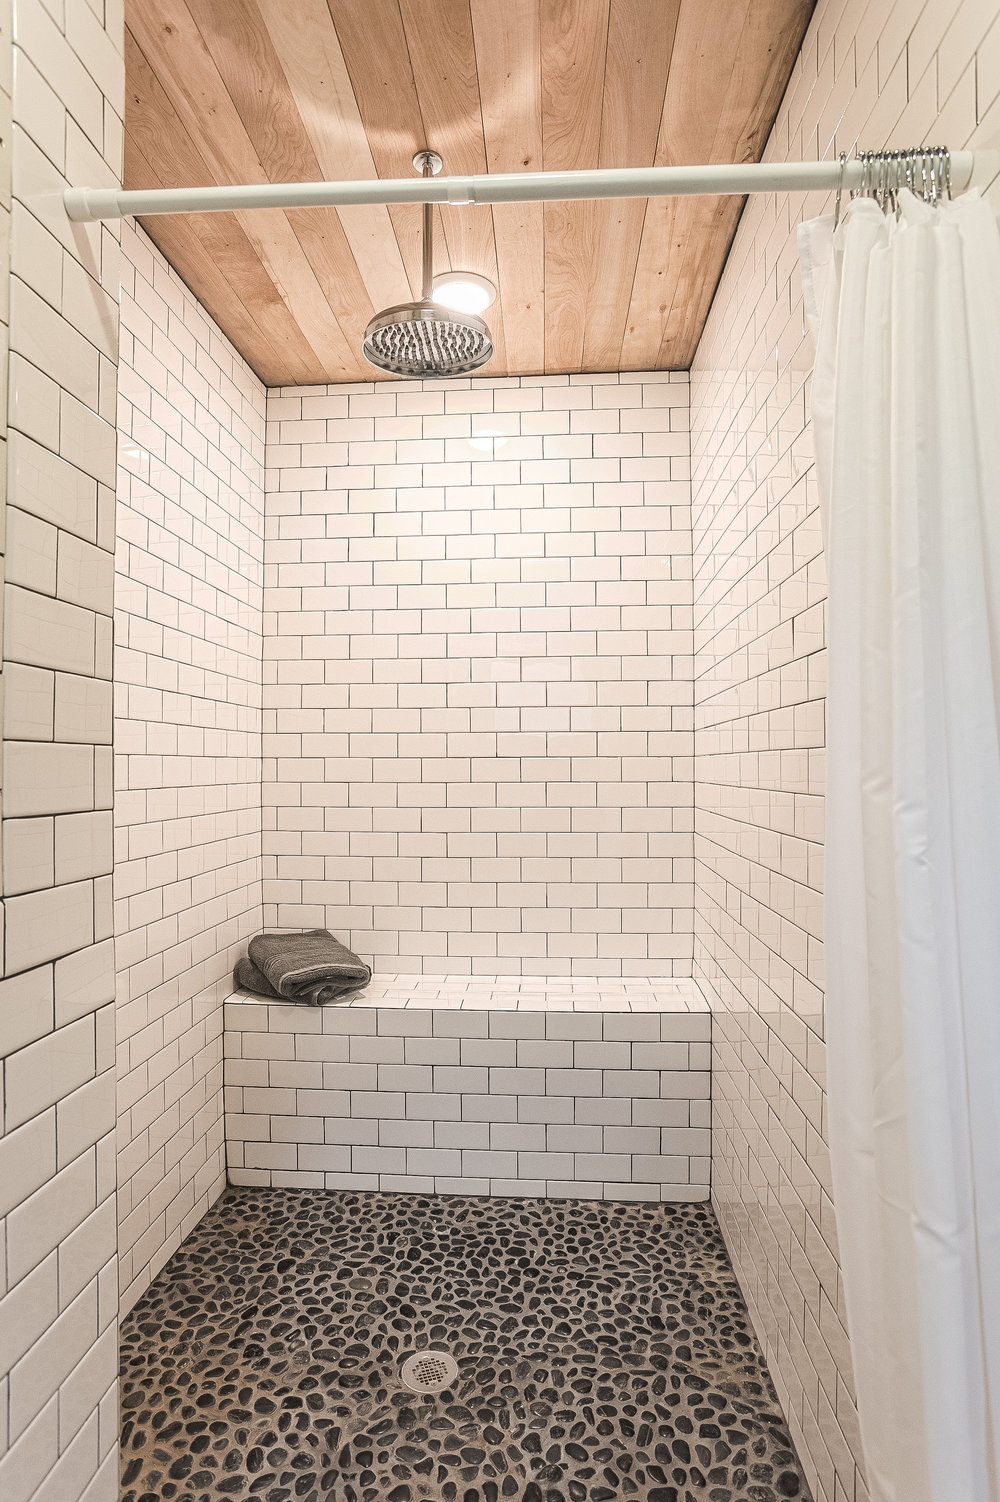 Subway tiled main house master bath with relaxing rain shower and river stones that massage your feet.